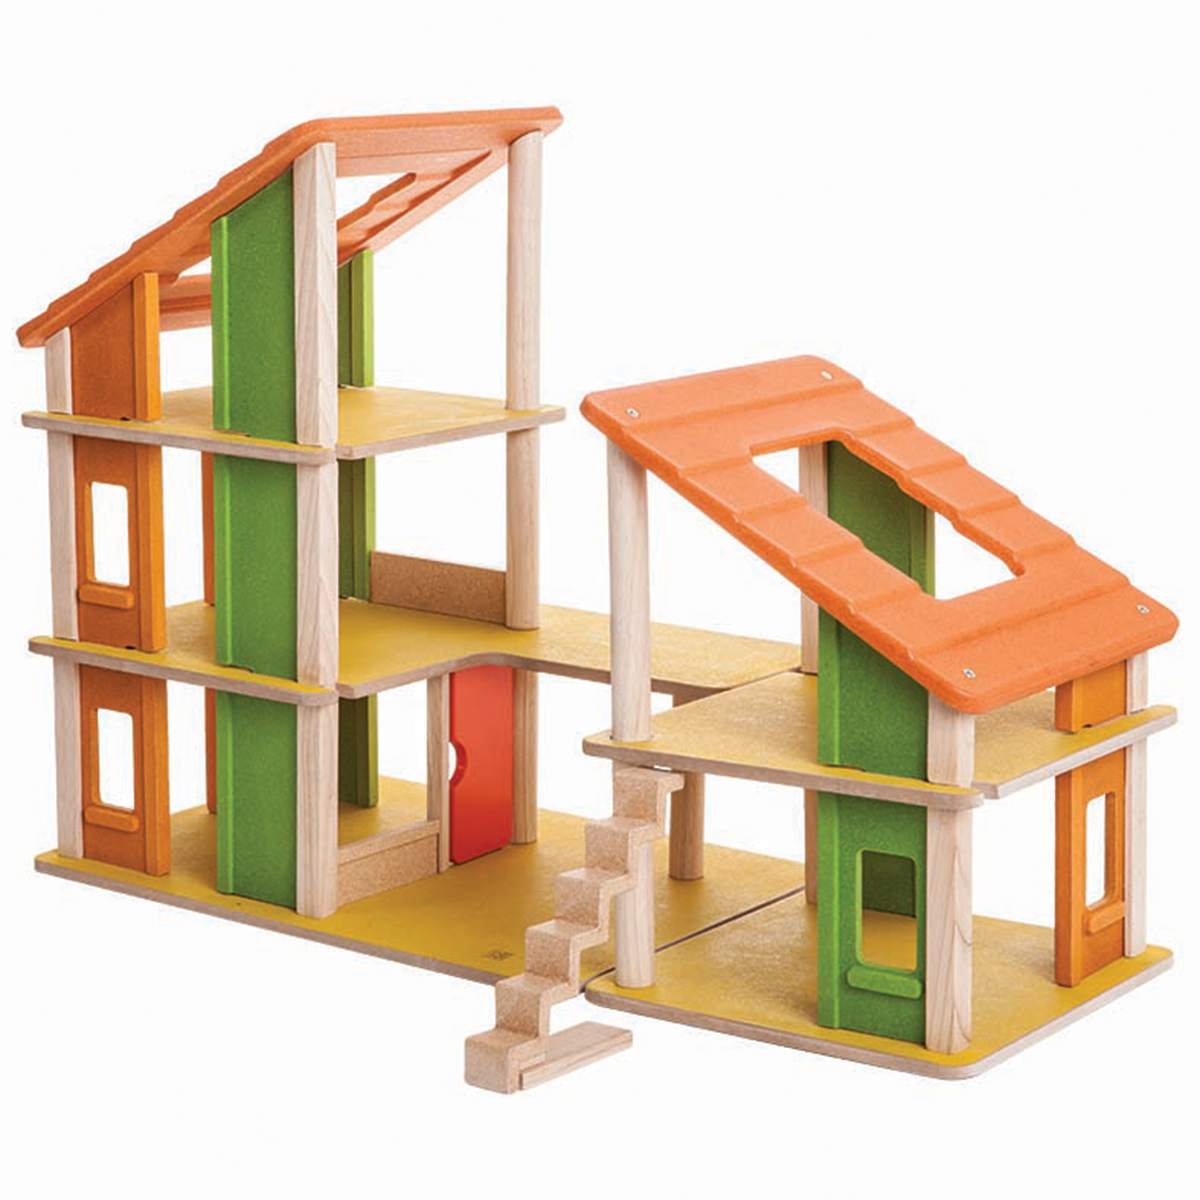 emejing plan toy chalet doll house with furniture images  d  - plan toys chalet dolls house